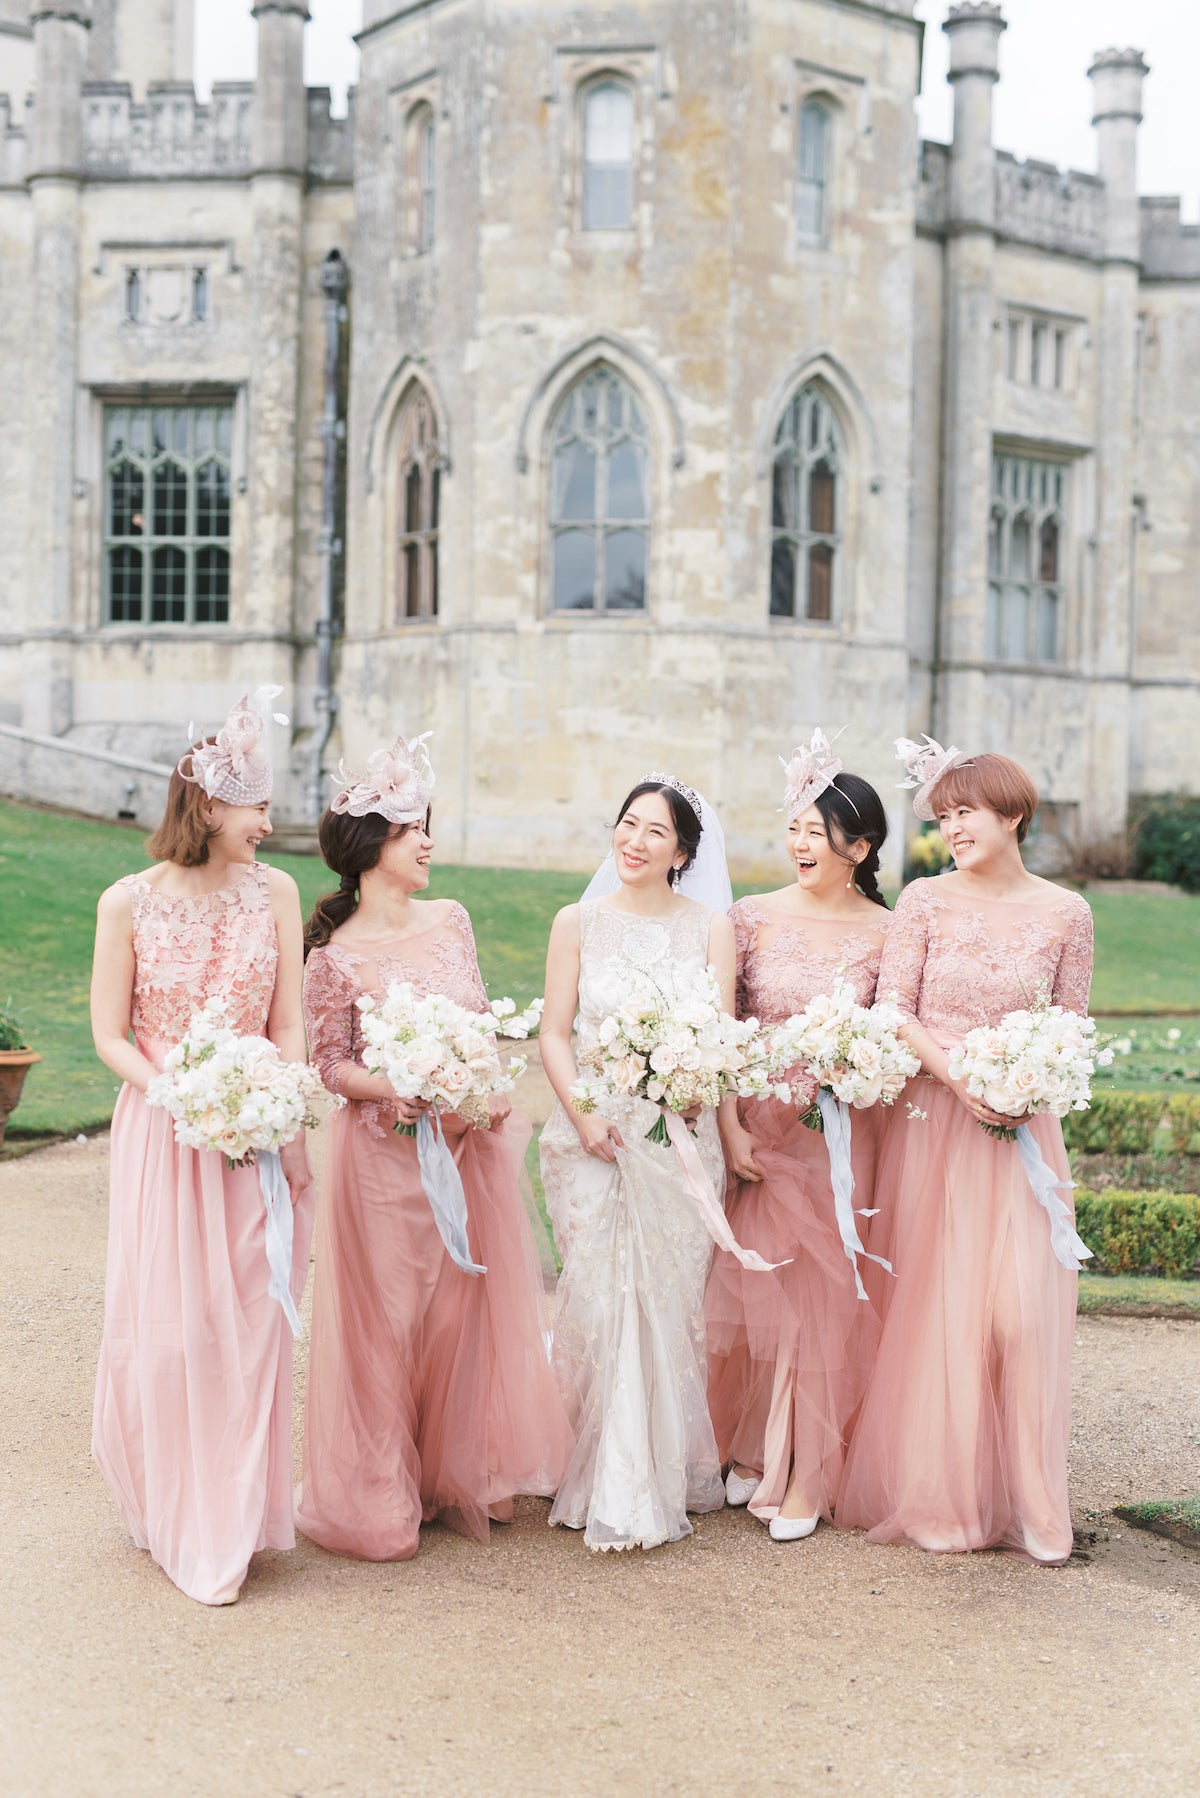 bella belle real brides sonoko with her bridesmaids london uk